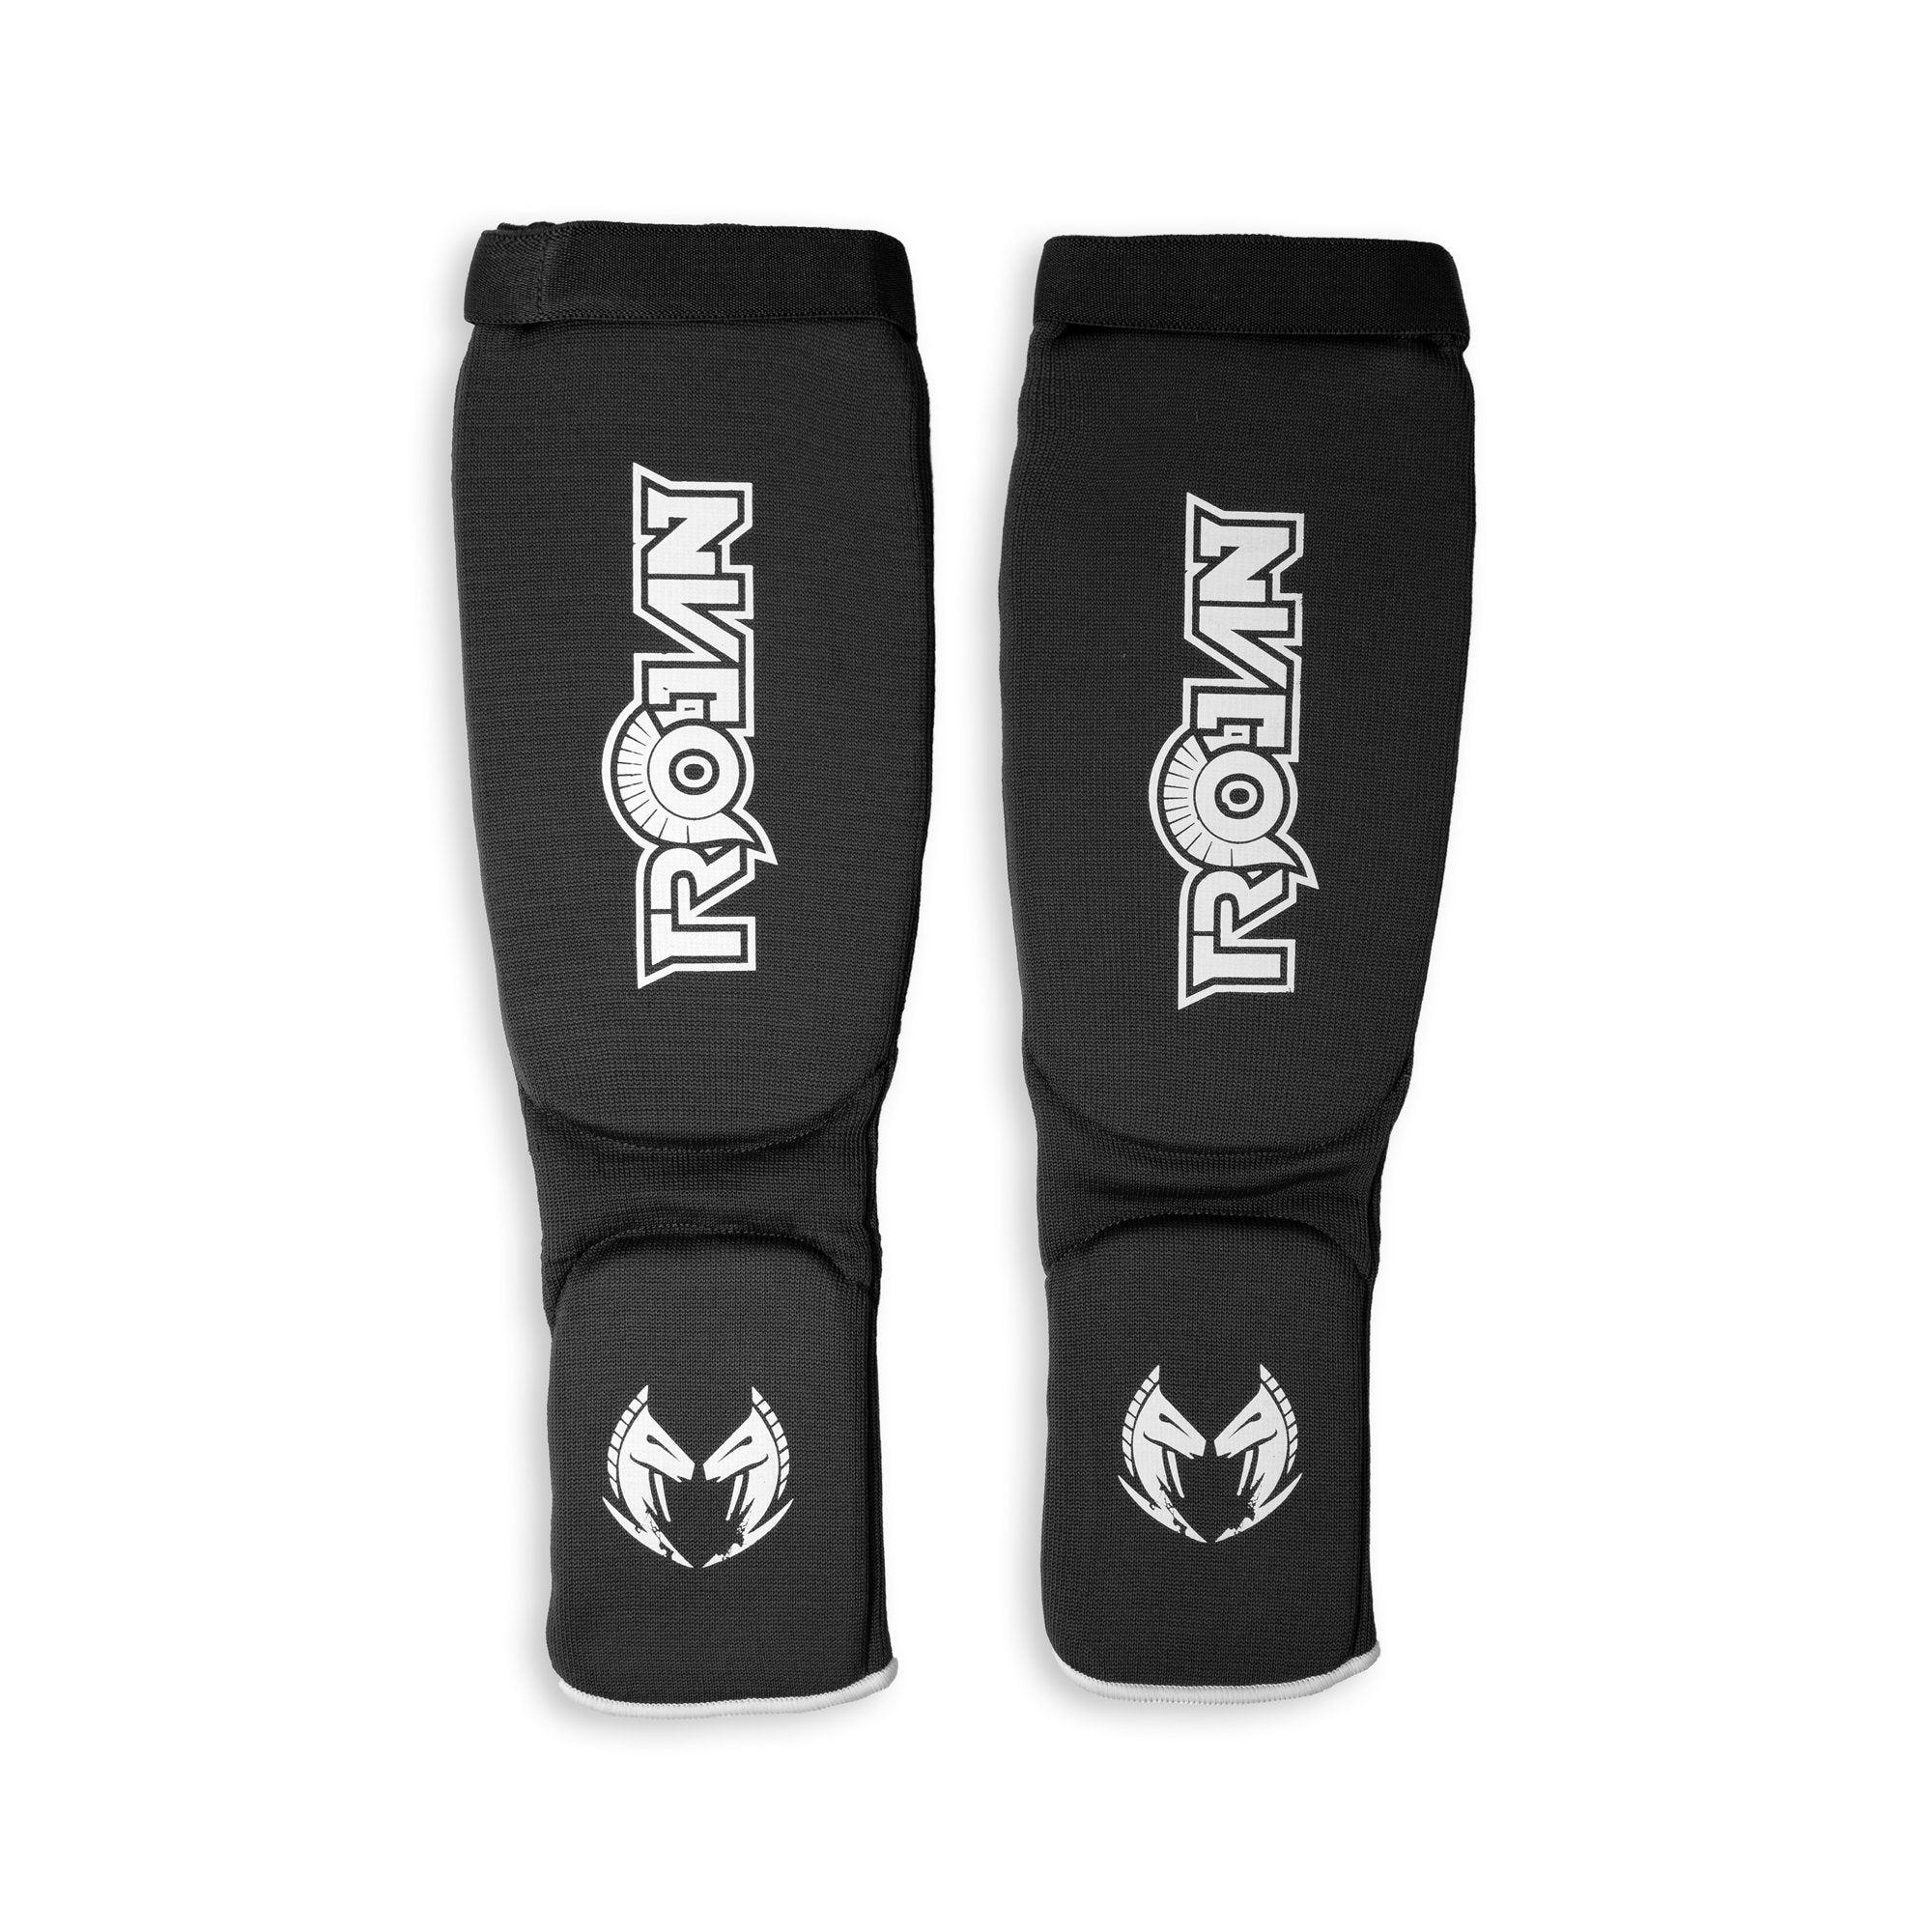 OCREA | CLOTH SHIN INSTEP - Trojan Fight.com | TrojanFight Boxing